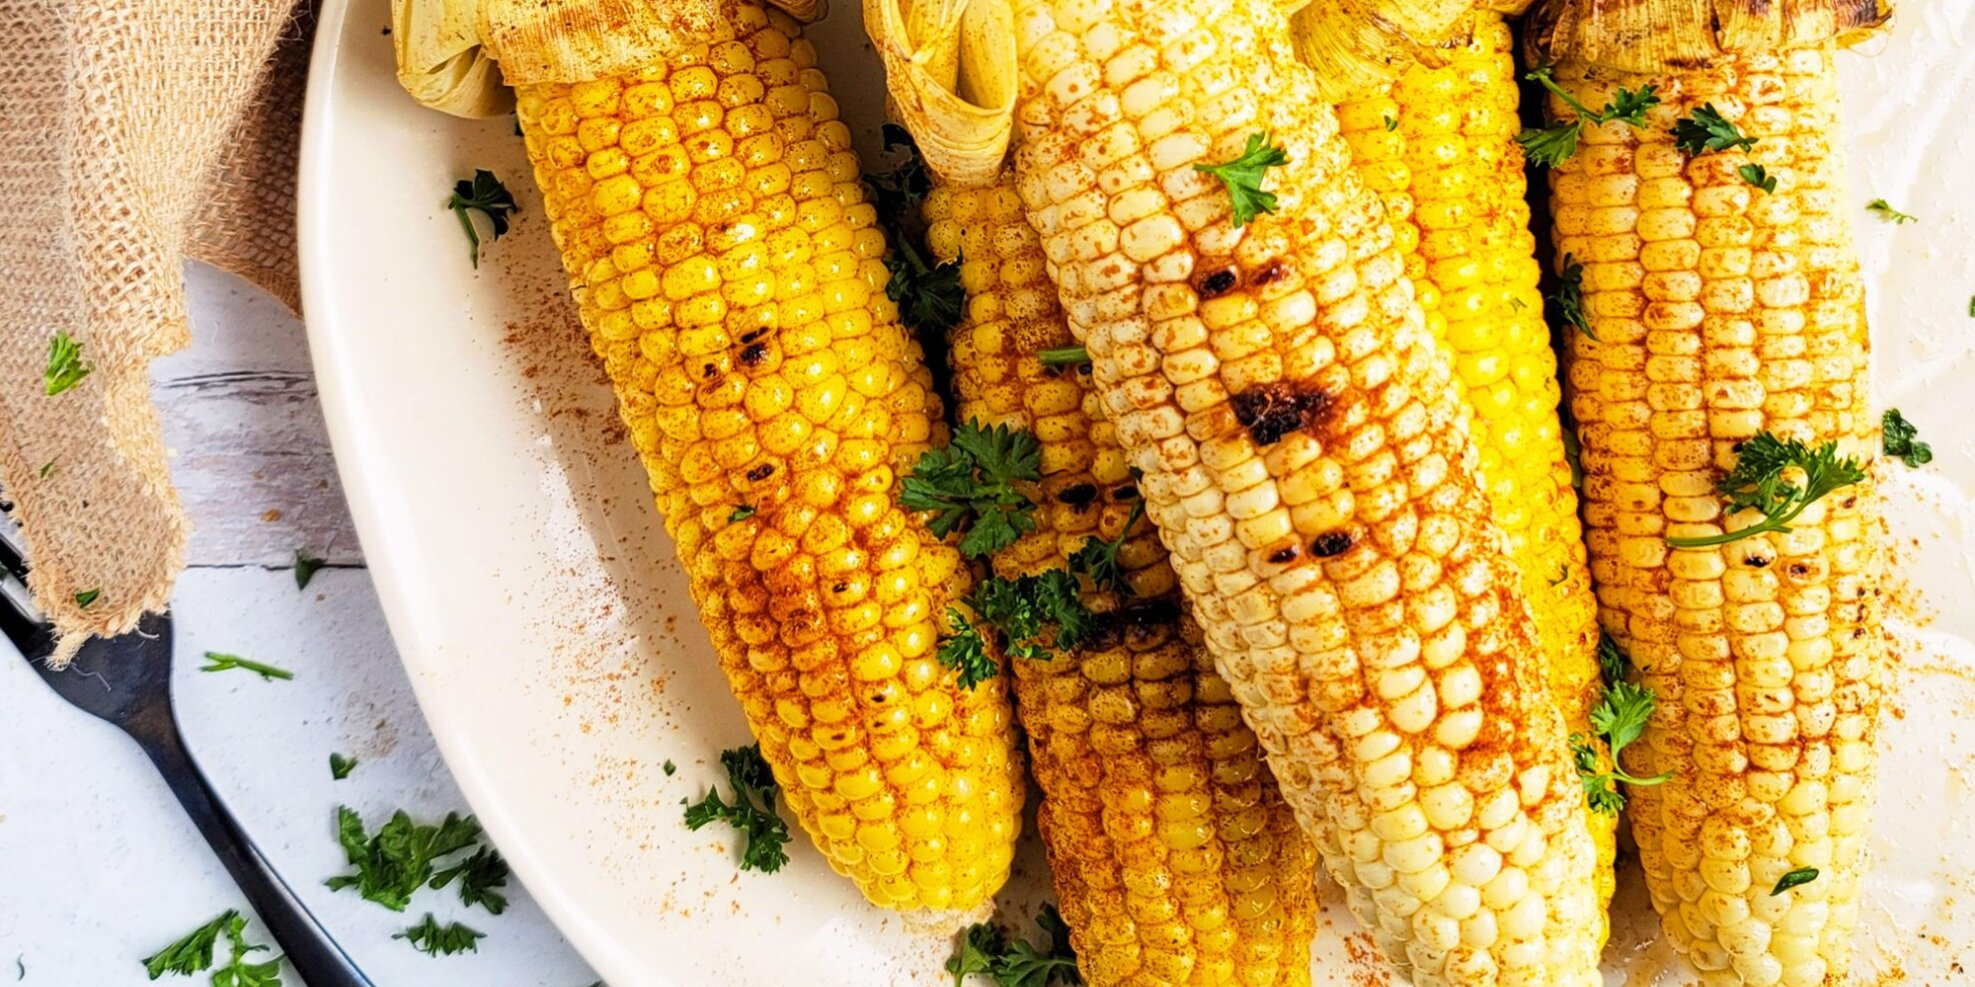 Spicy Grilled Corn on the Cob